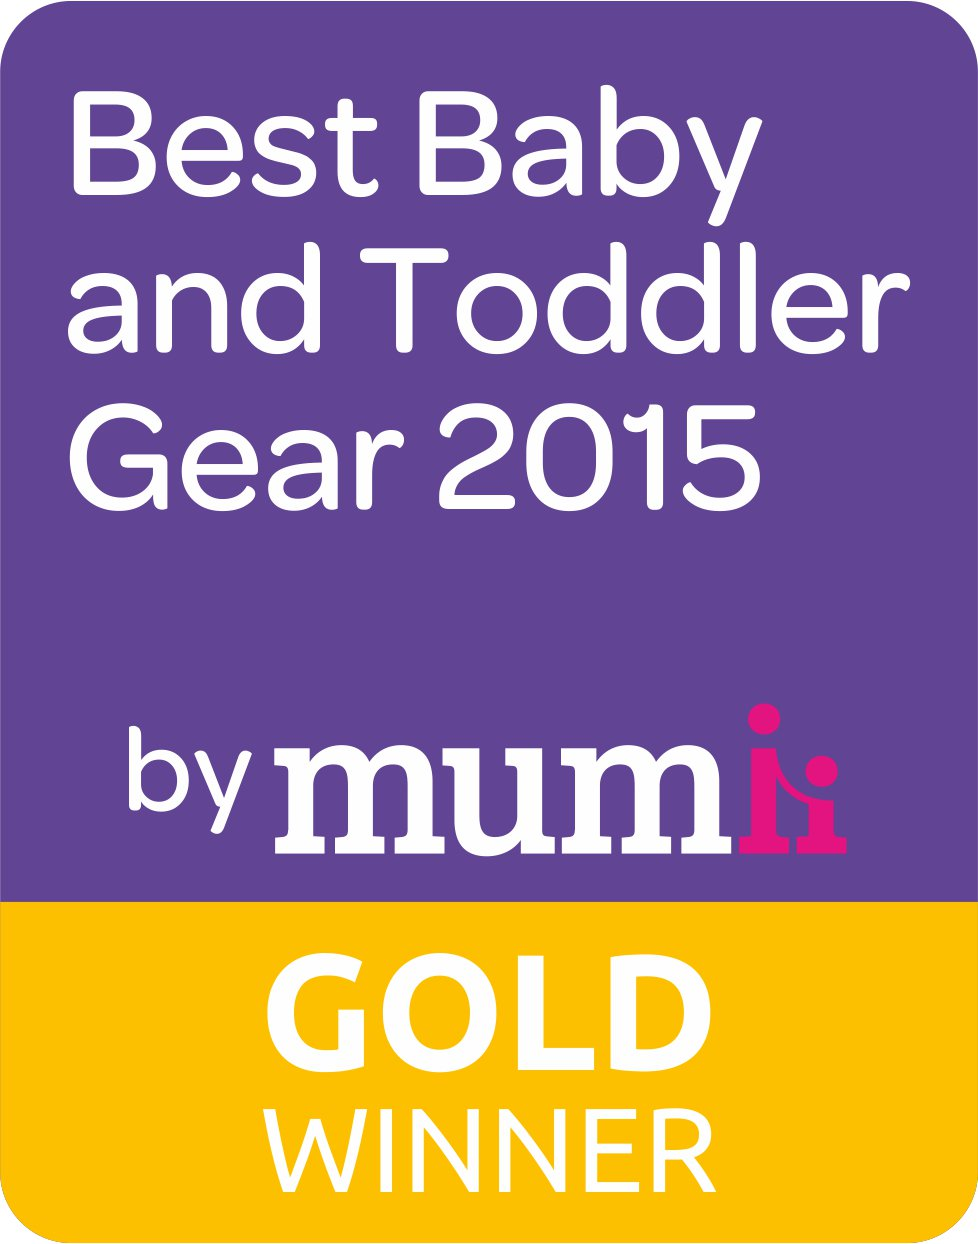 Nagroda Best Baby and Toddler Gear 2015 dla Tidy Tot